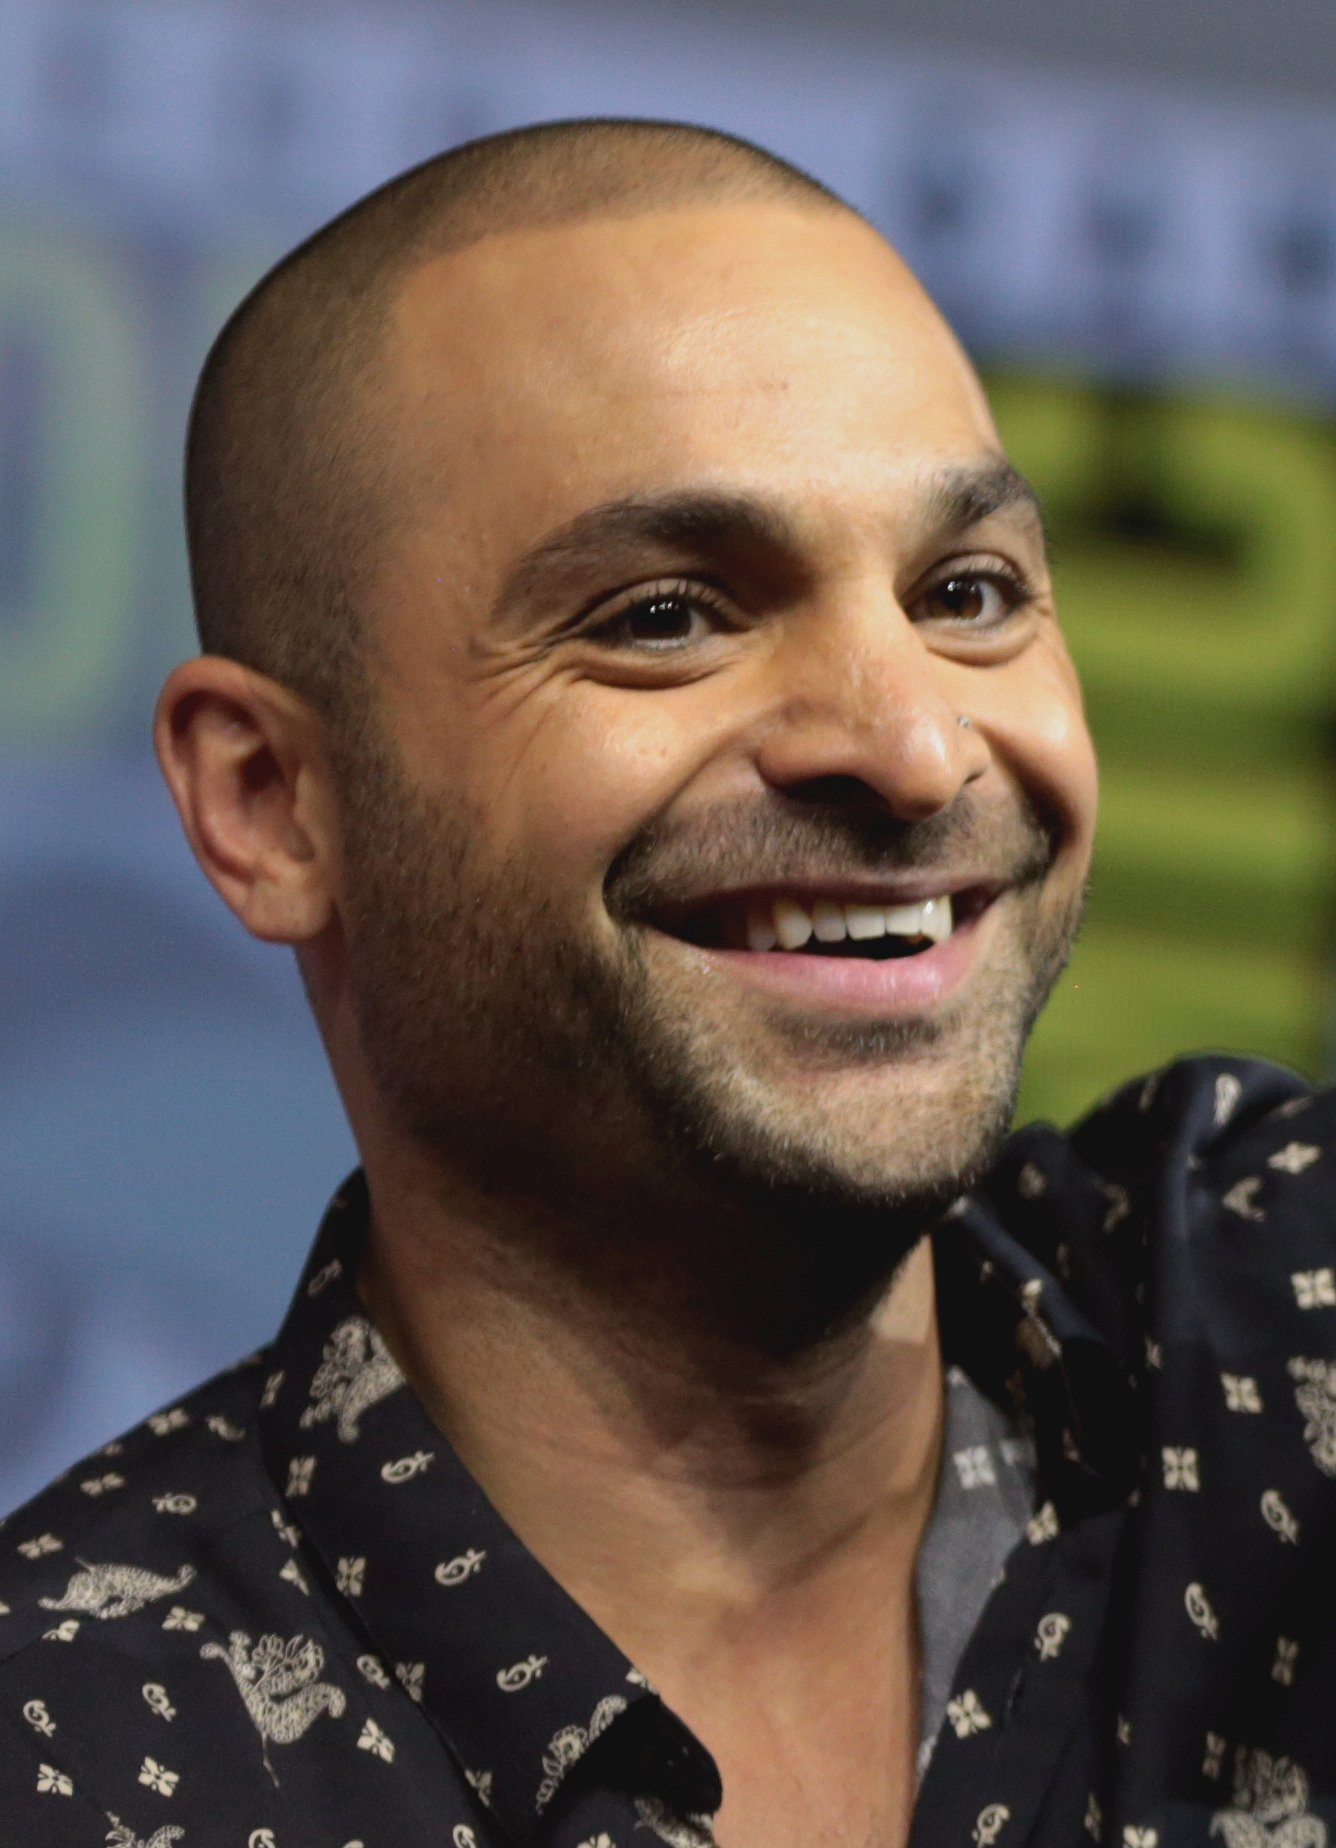 The 37-year old son of father (?) and mother(?) Michael Mando in 2018 photo. Michael Mando earned a  million dollar salary - leaving the net worth at 2.4 million in 2018